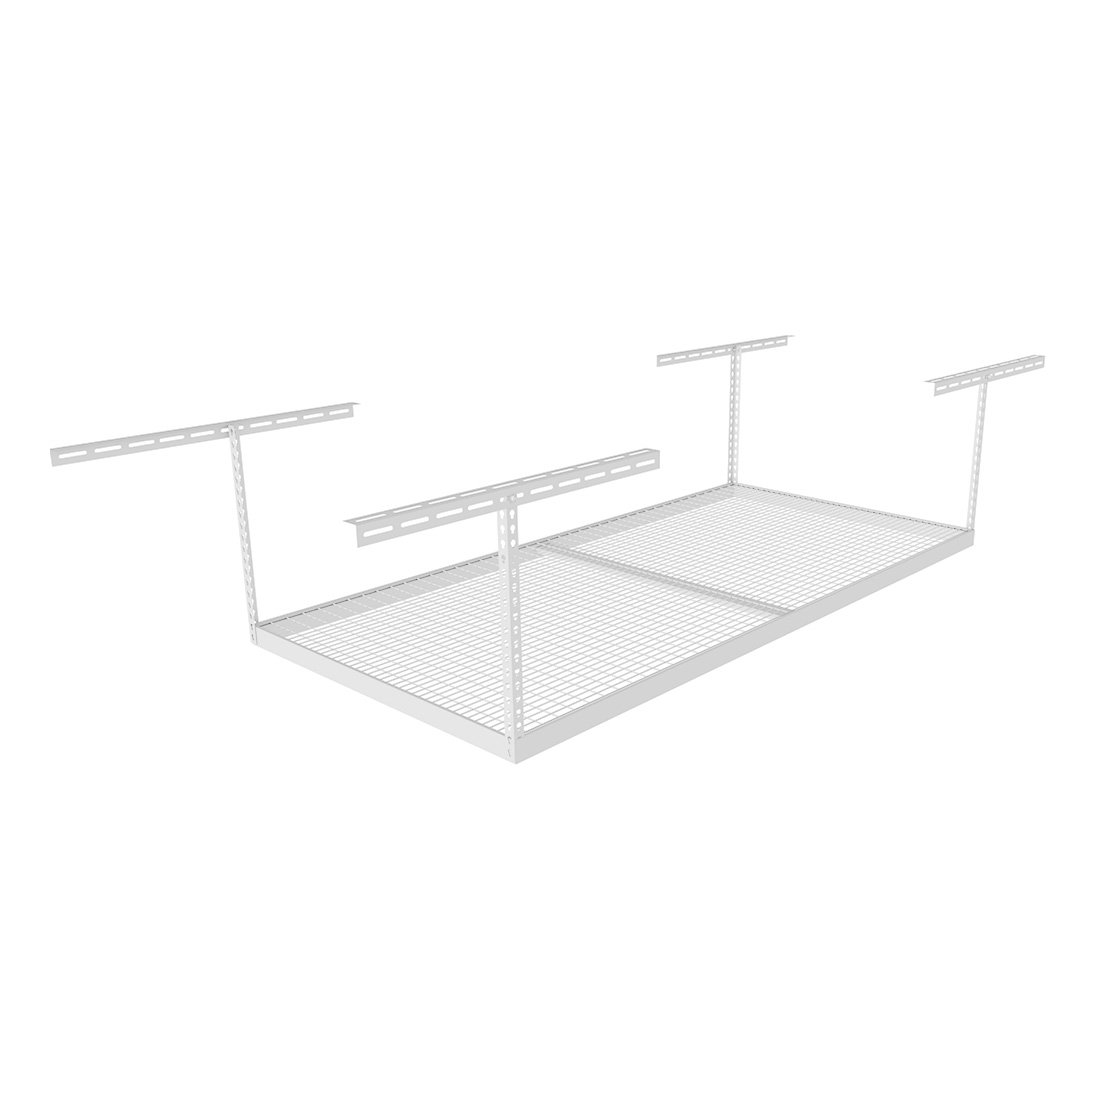 "MonsterRax (MR-4x8-W Pack 18) 4'x8' Overhead Storage Rack 18"" to 33"" Drop - White"